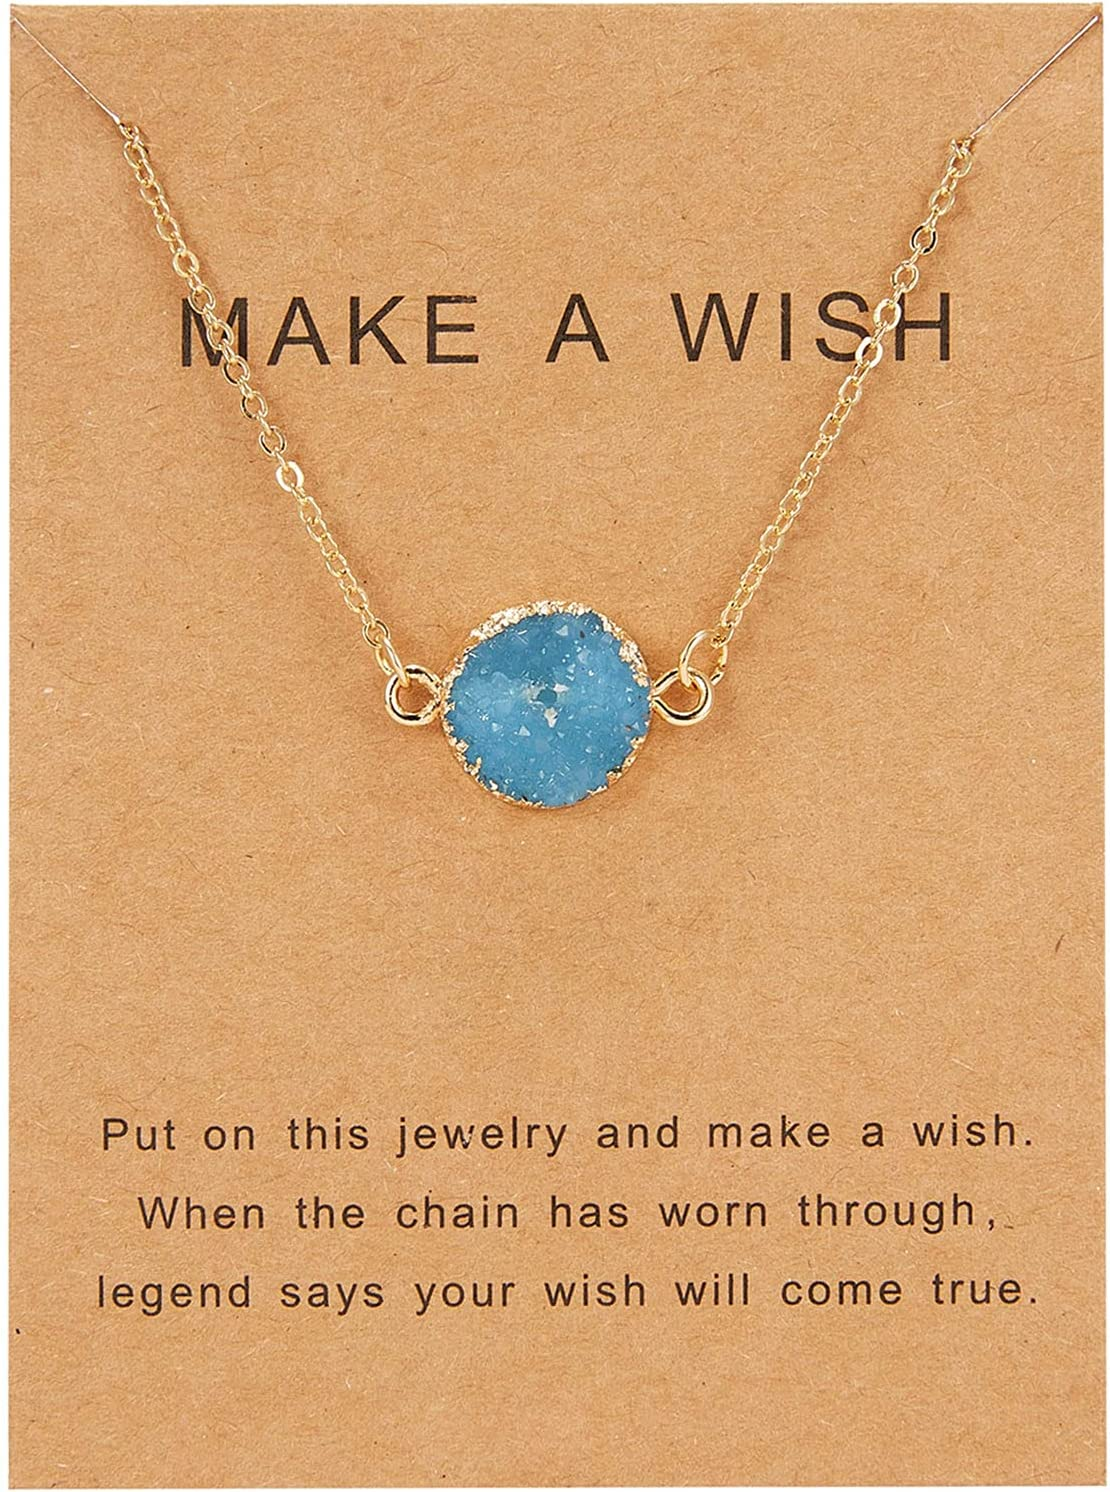 Tuscom Women's Moon Necklace Natural Stone Pendant Personalized Necklace Friendship Necklace Temperament Clavicle Chain Jewelry (Light Blue#2-1pc, 0.8x0.8/ 2x2cm)